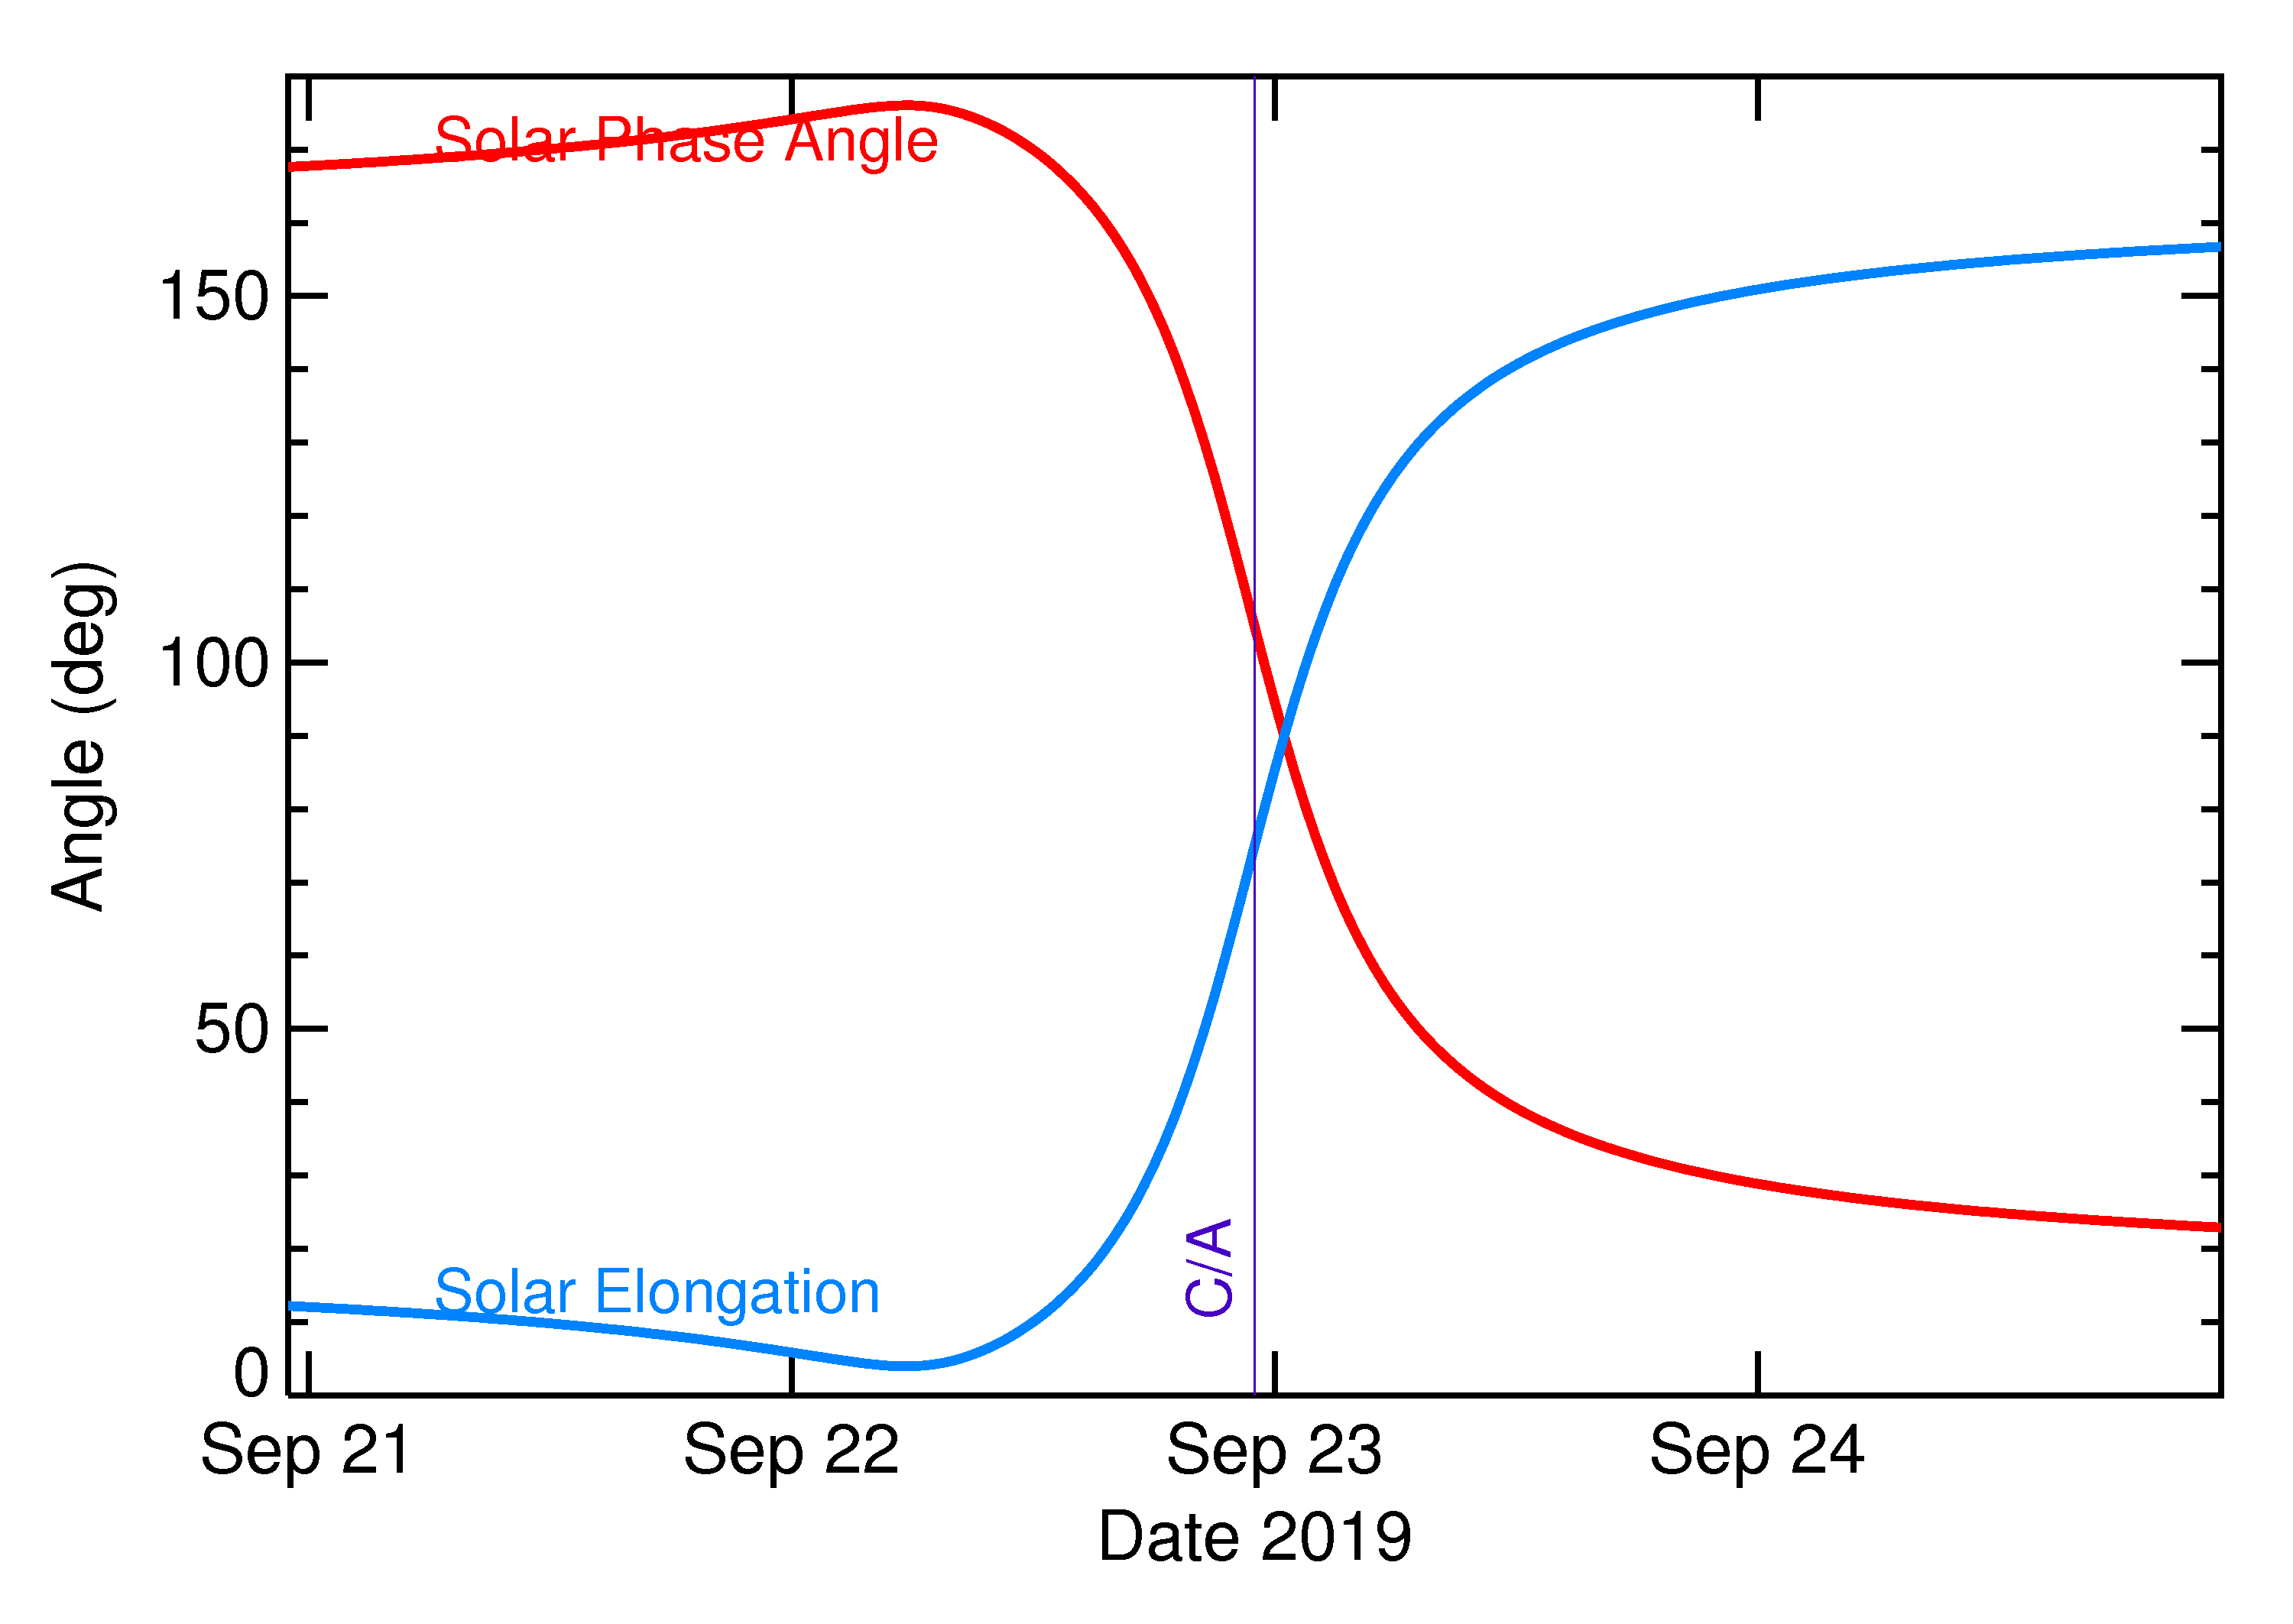 Solar Elongation and Solar Phase Angle of 2019 SS3 in the days around closest approach